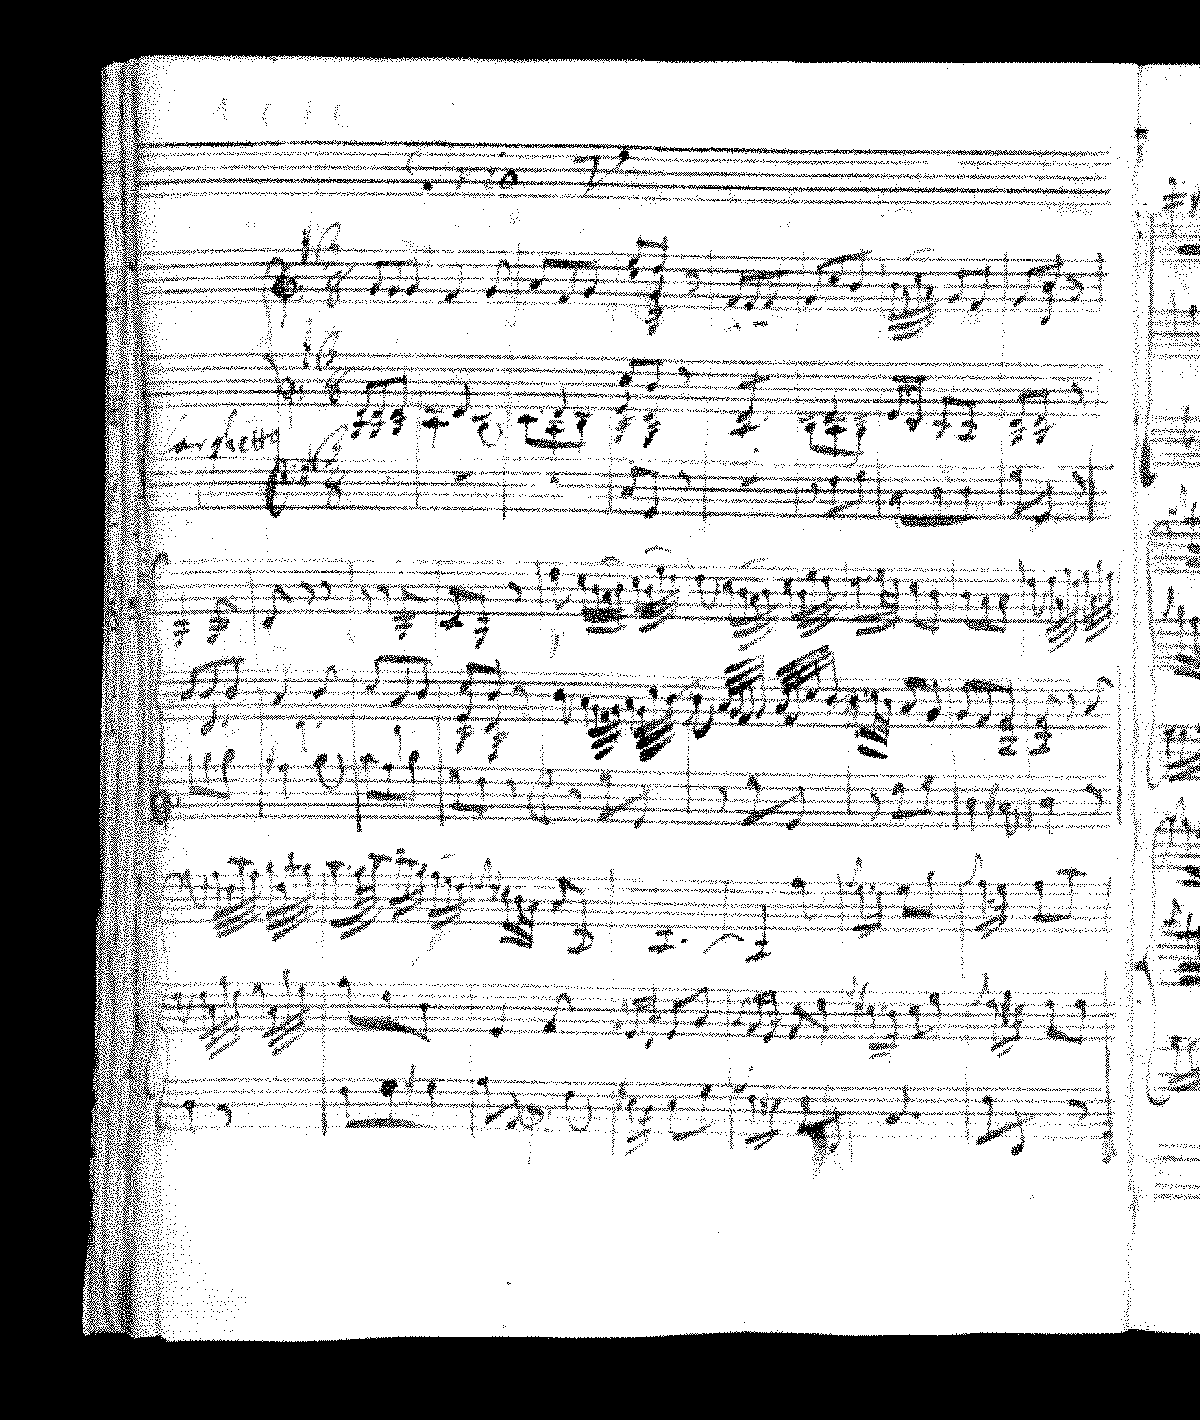 PMLP78145-Boccherini - Trio for 2 Violins and Cello No05 in GM - G81.pdf